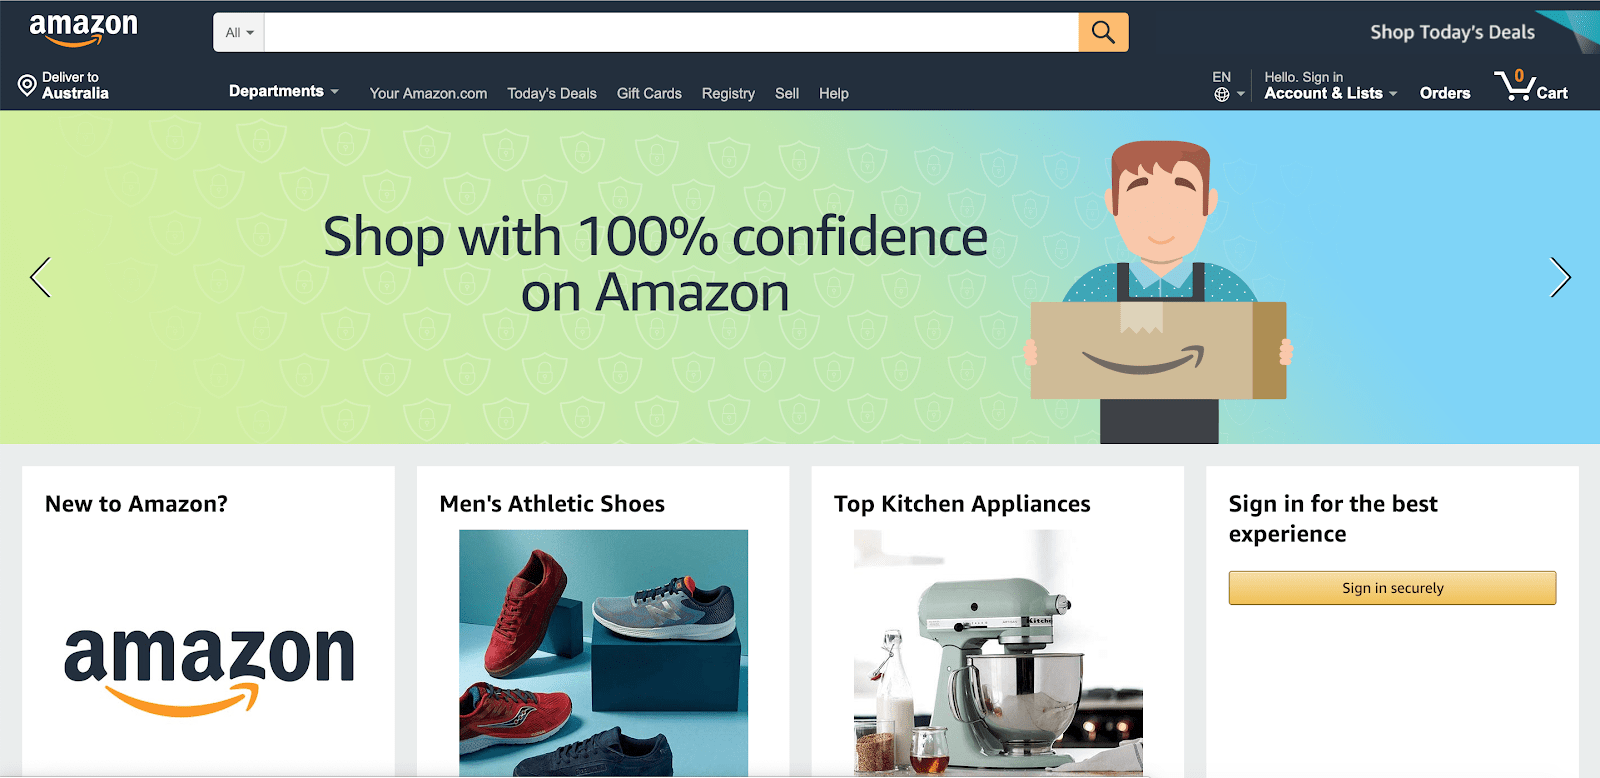 Top 10 best eCommerce API Amazon API, Shopify API, eBay API, Woocommerce API, Magento API, Bigcommerce API, Kite API, Best Buy API, Gumroad API, API2CART API